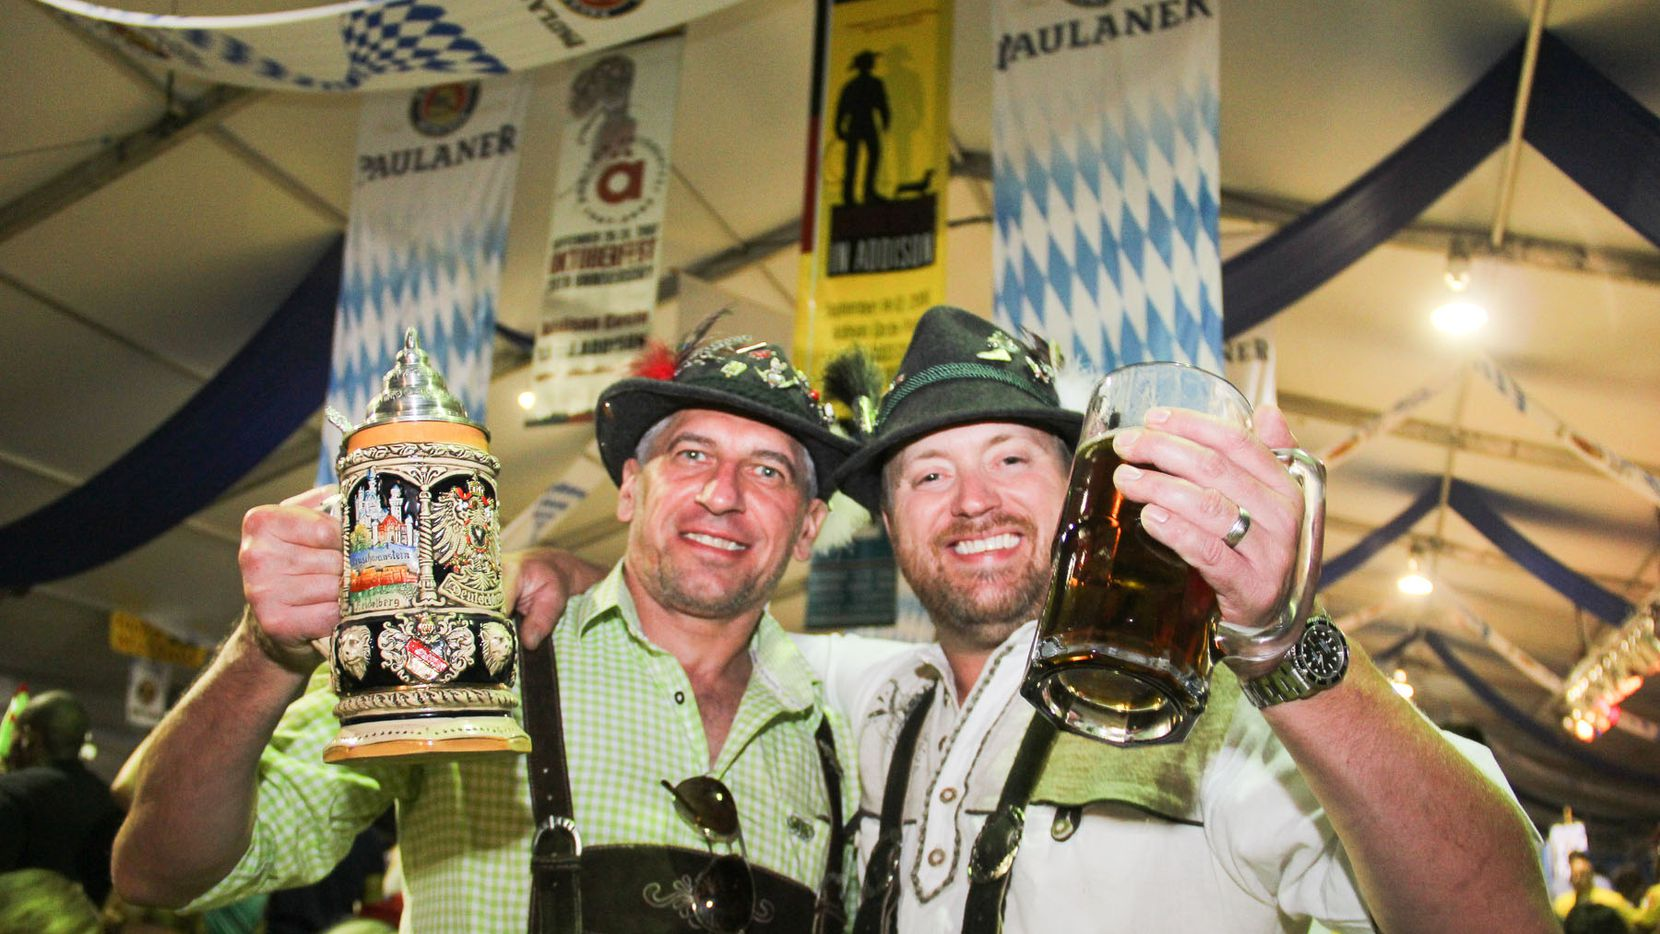 Antomio Cchirca and Paul Grein enjoyed the beer at Oktoberfest in Addison last year. The festival featured a midway with rides and live music brats and beer.